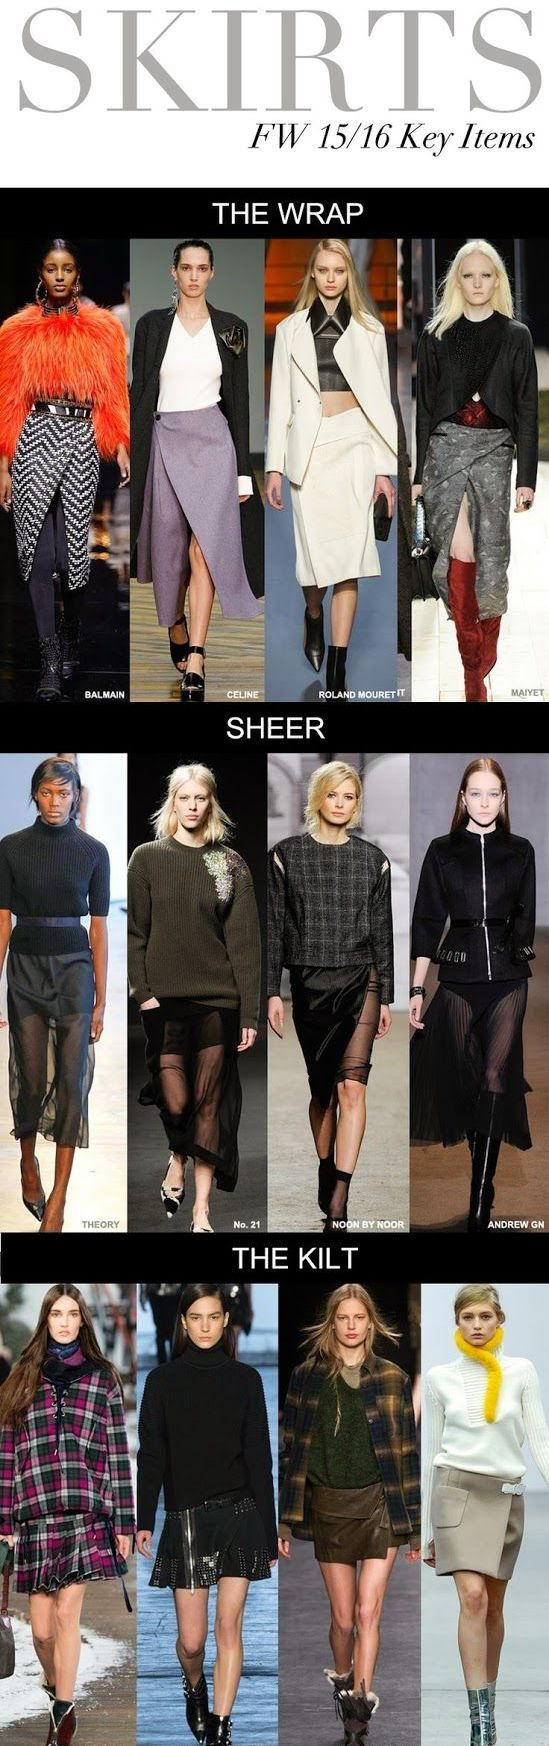 Skirts colors and trends Fall - Winter 2015-2016 woman fashion apparel ---- Tendenze Gonne stagione Autunno-Inverno 2015-2016 moda donna